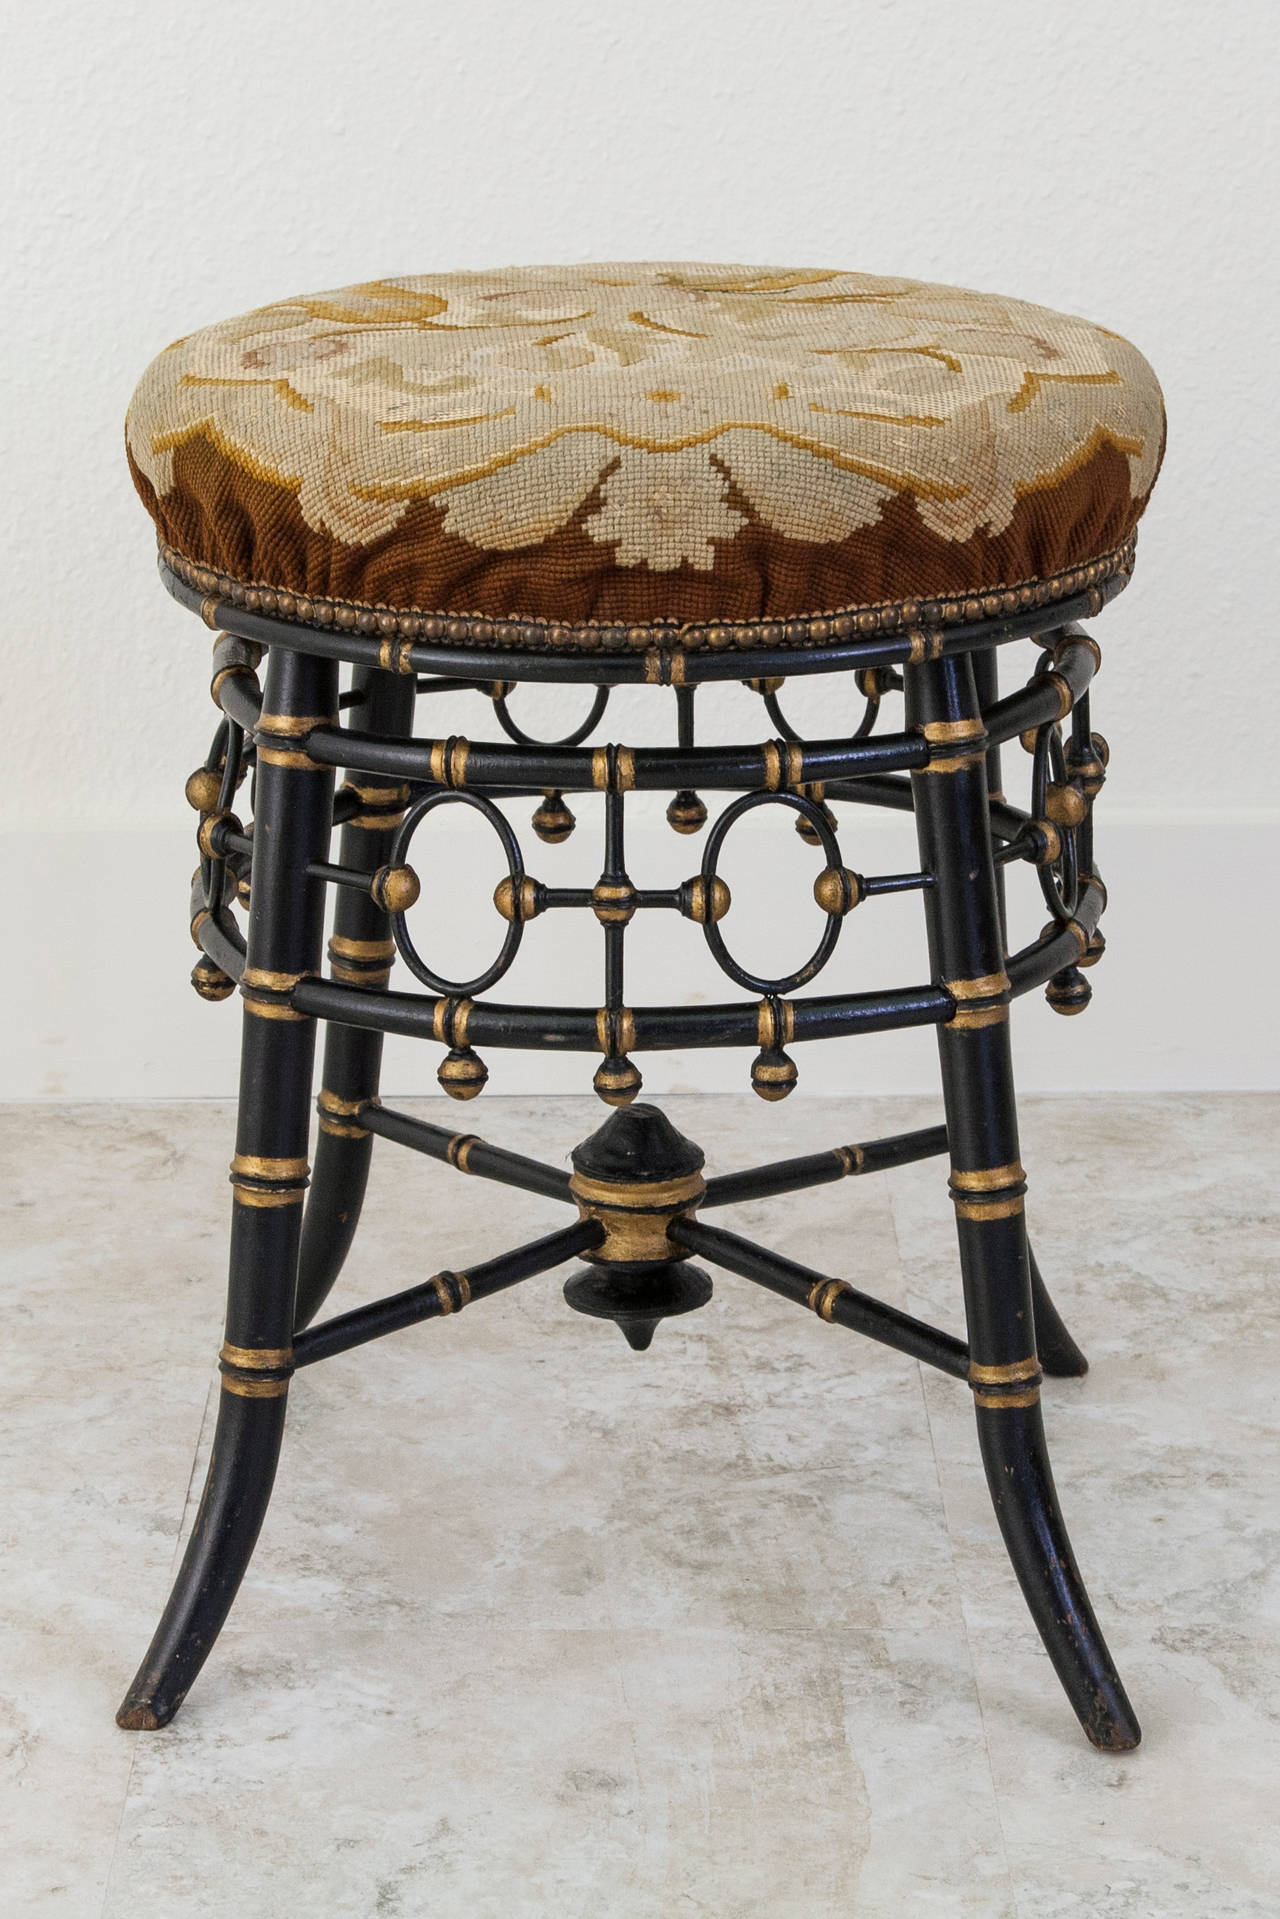 image quarter bamboo bathroom stool napoleon iii era ebonized faux bamboo and gilt stool or seat